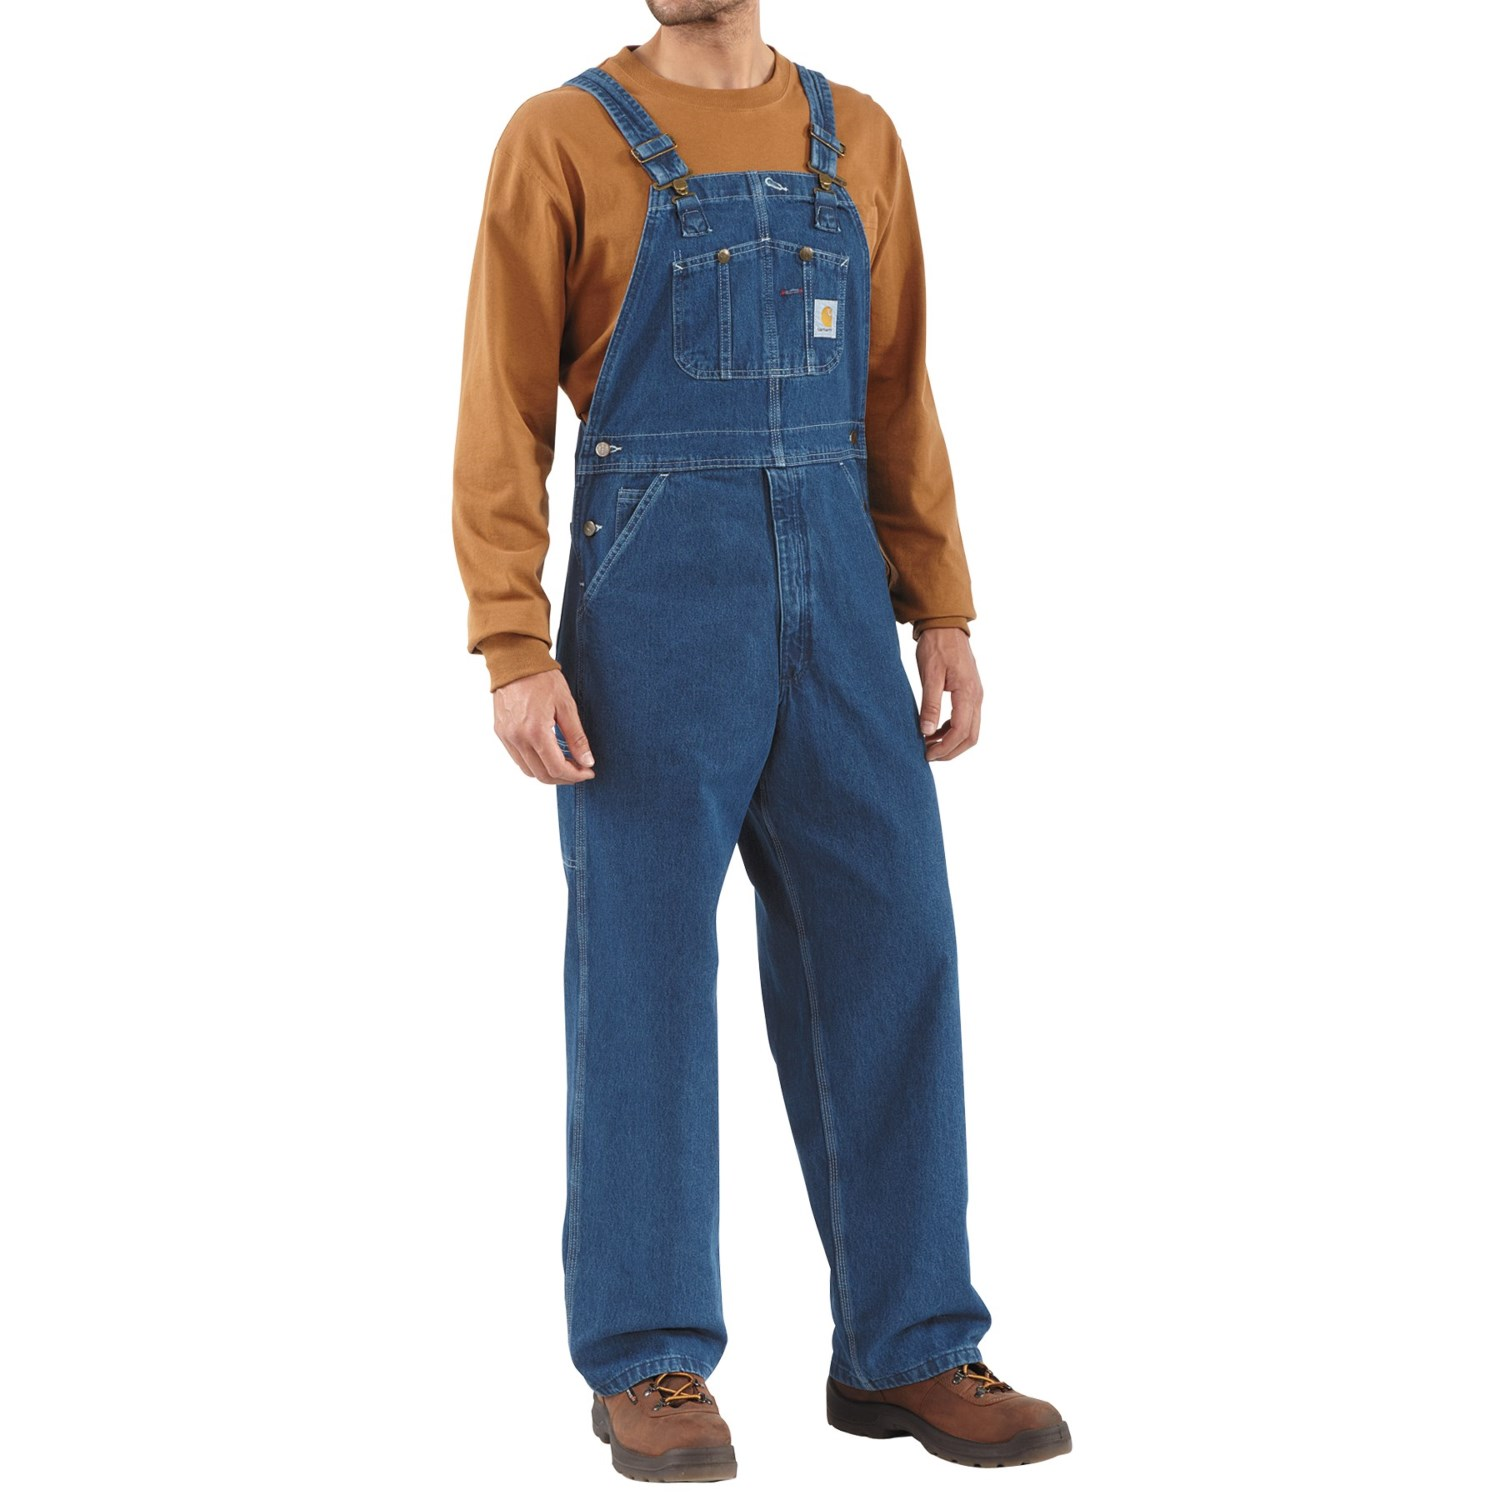 Types of men's big and tall overalls. Men's big and tall overalls are available in a variety of styles, such as dungarees and bibs, and crafted from heavy-duty materials designed to withstand whatever you encounter at work, as protection and mobility are key on the job.